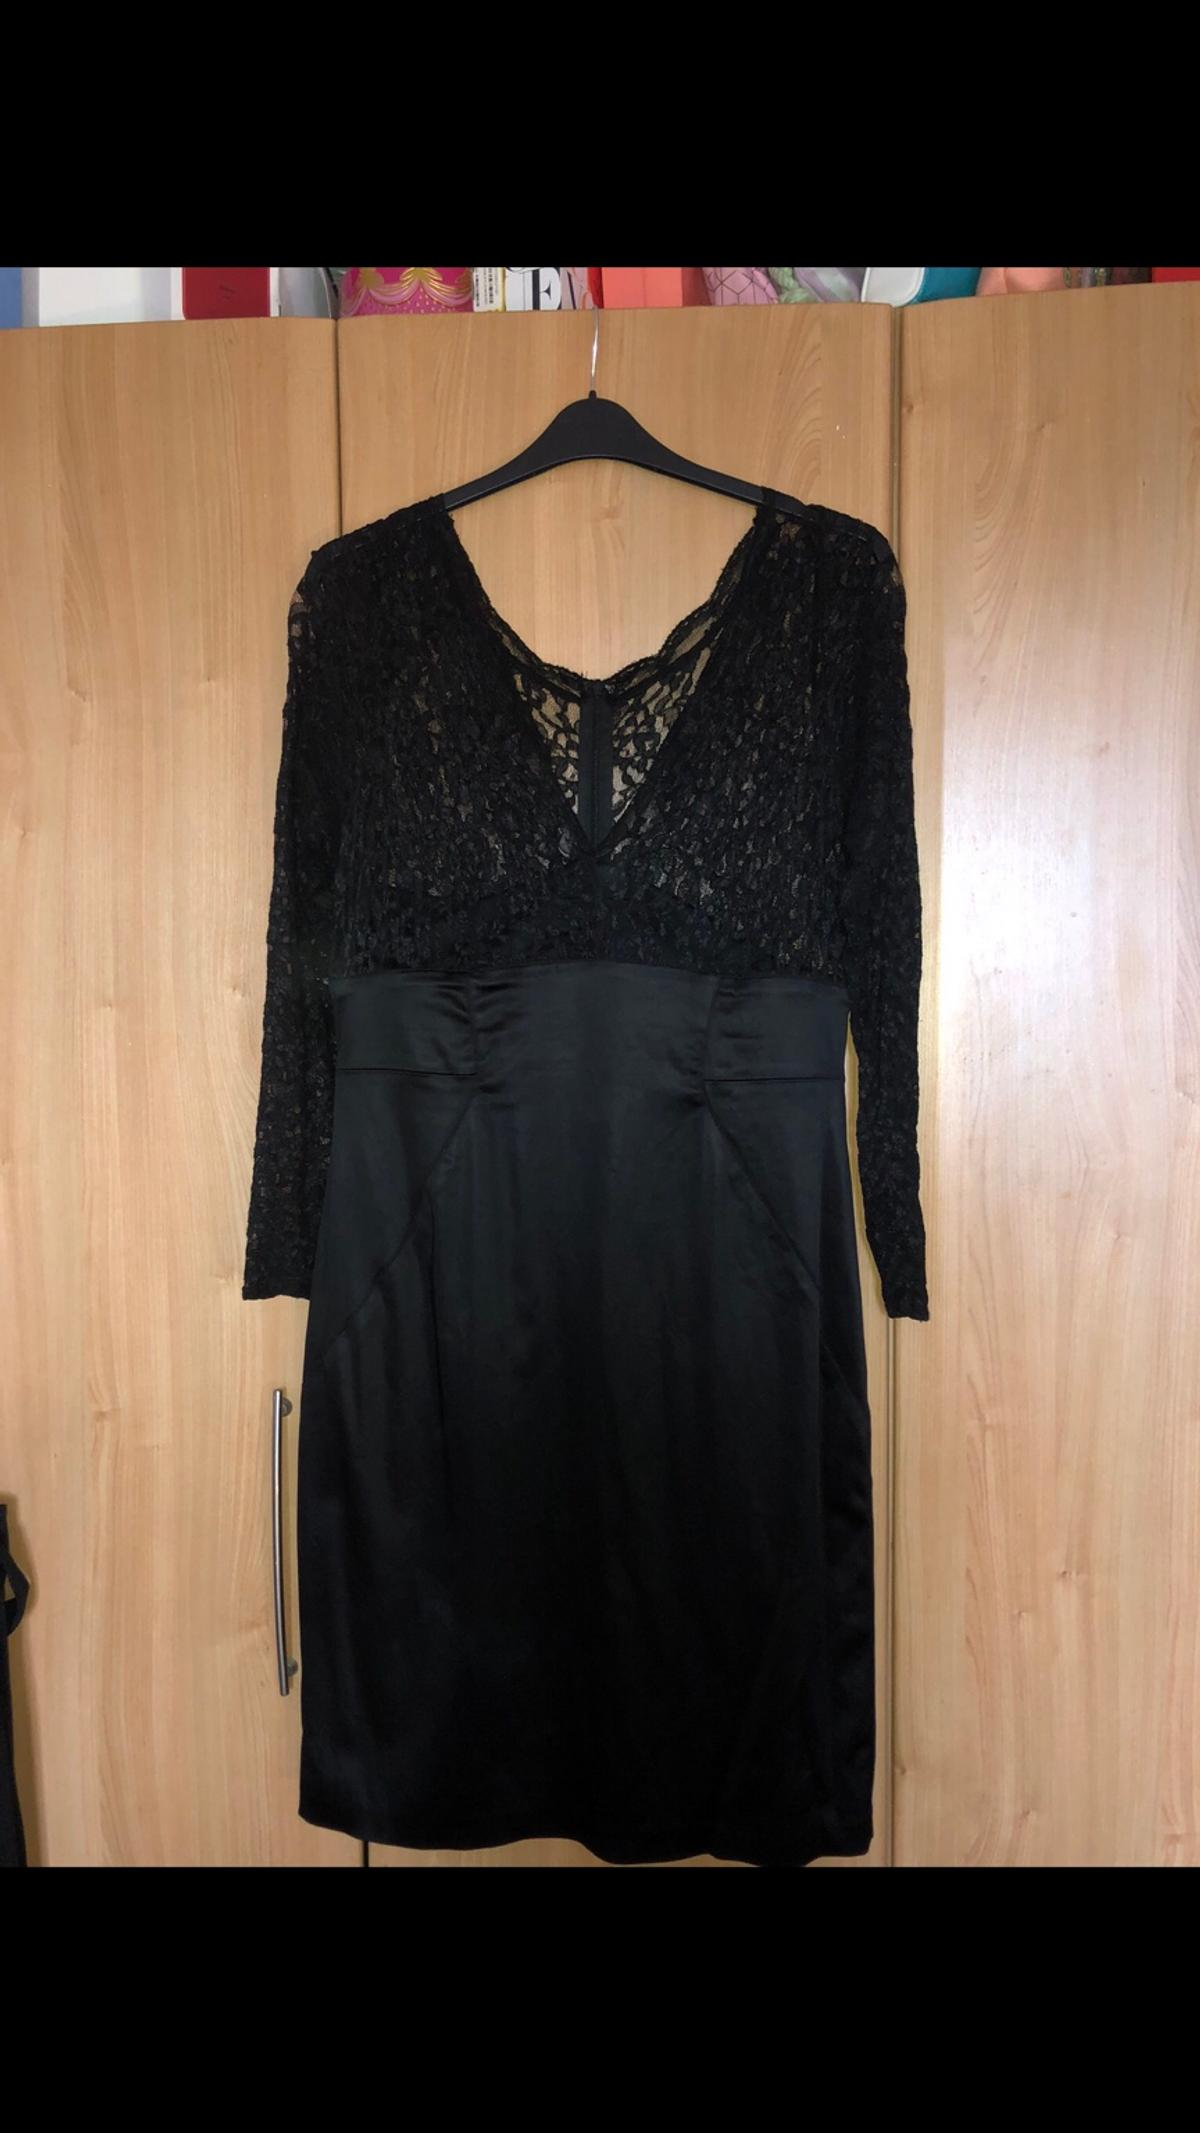 Ladies Black Lace Topped Fitted Dress Size 18